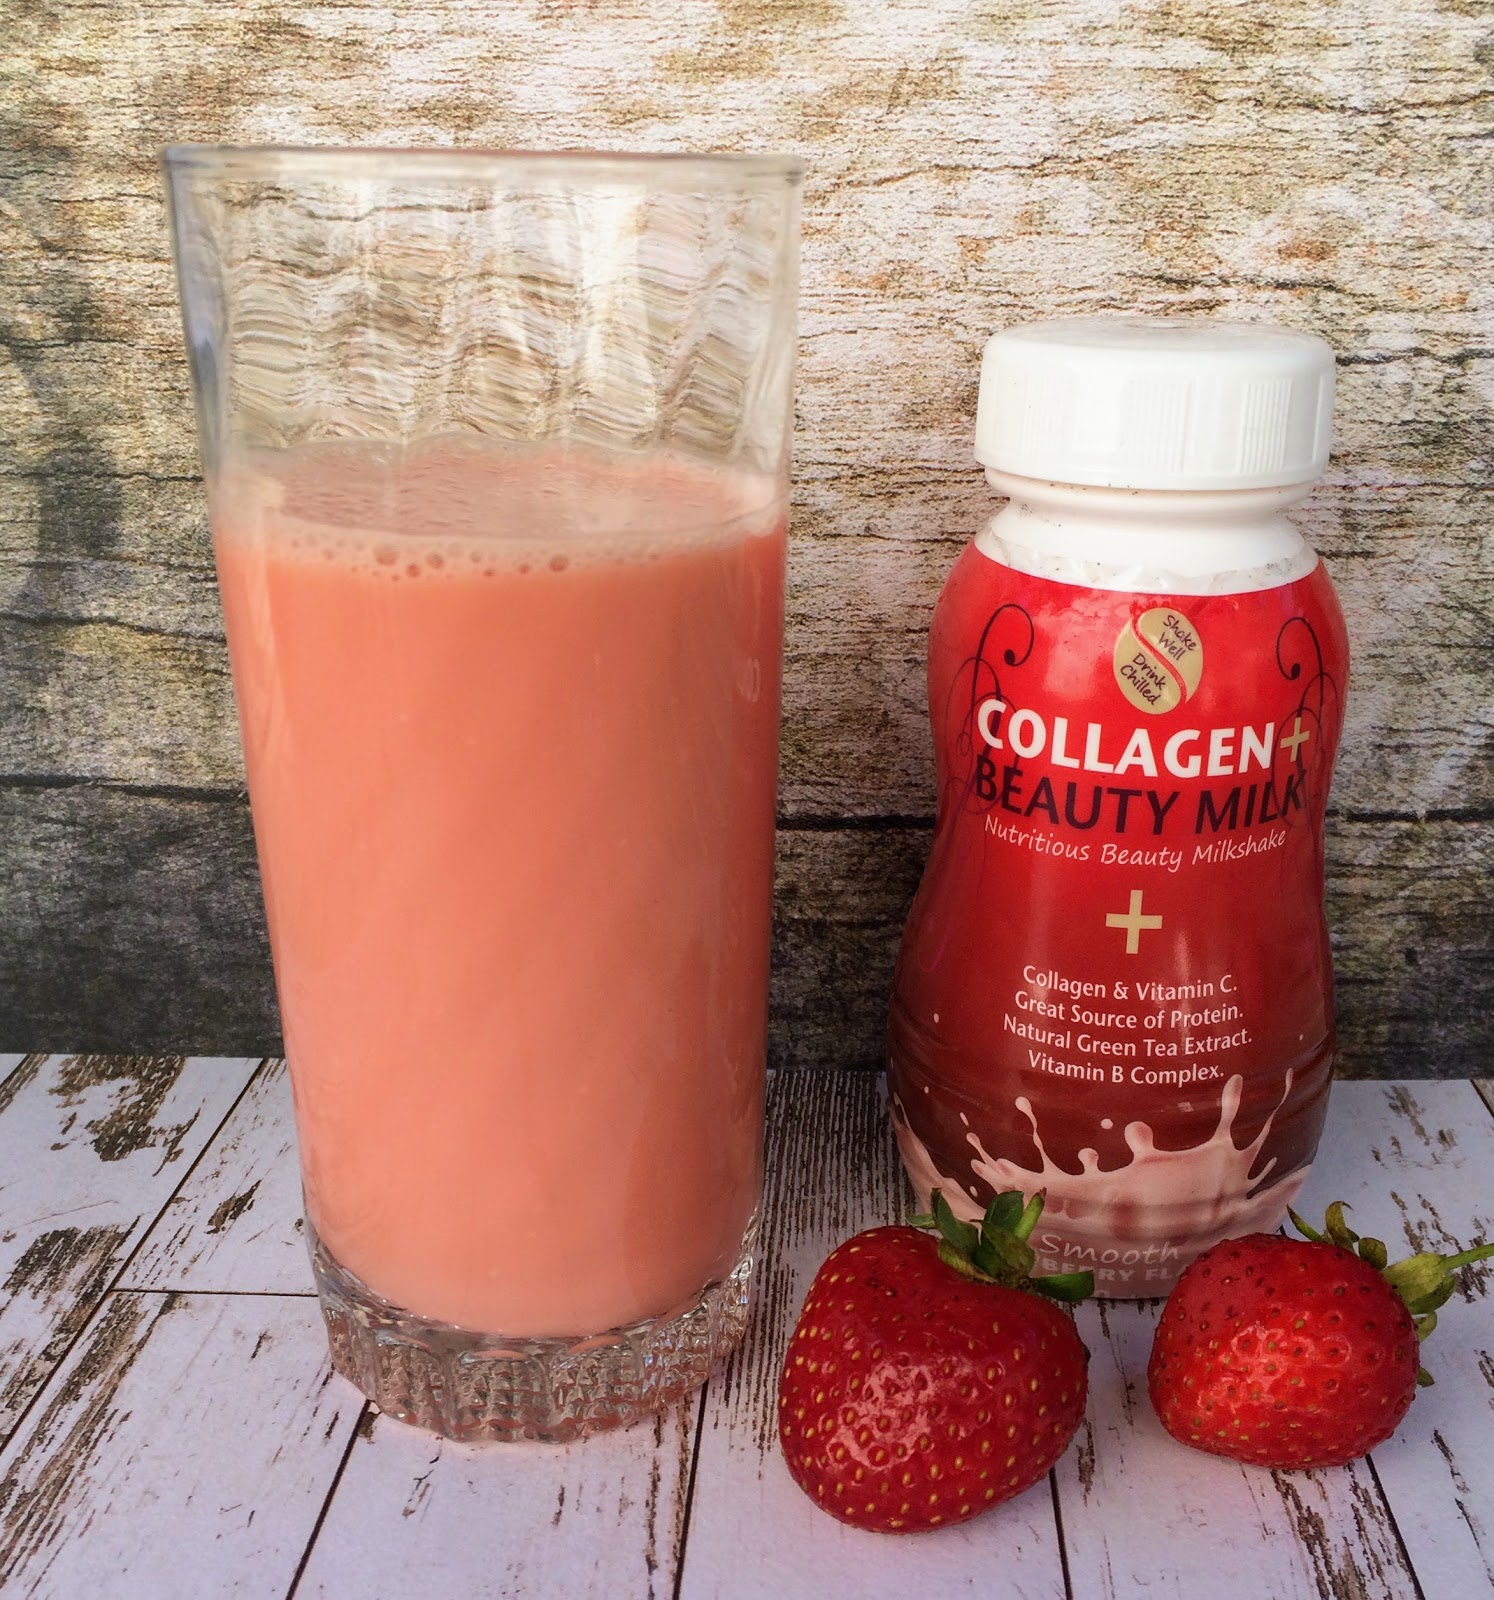 Collagen Beauty Milk poured into the glass